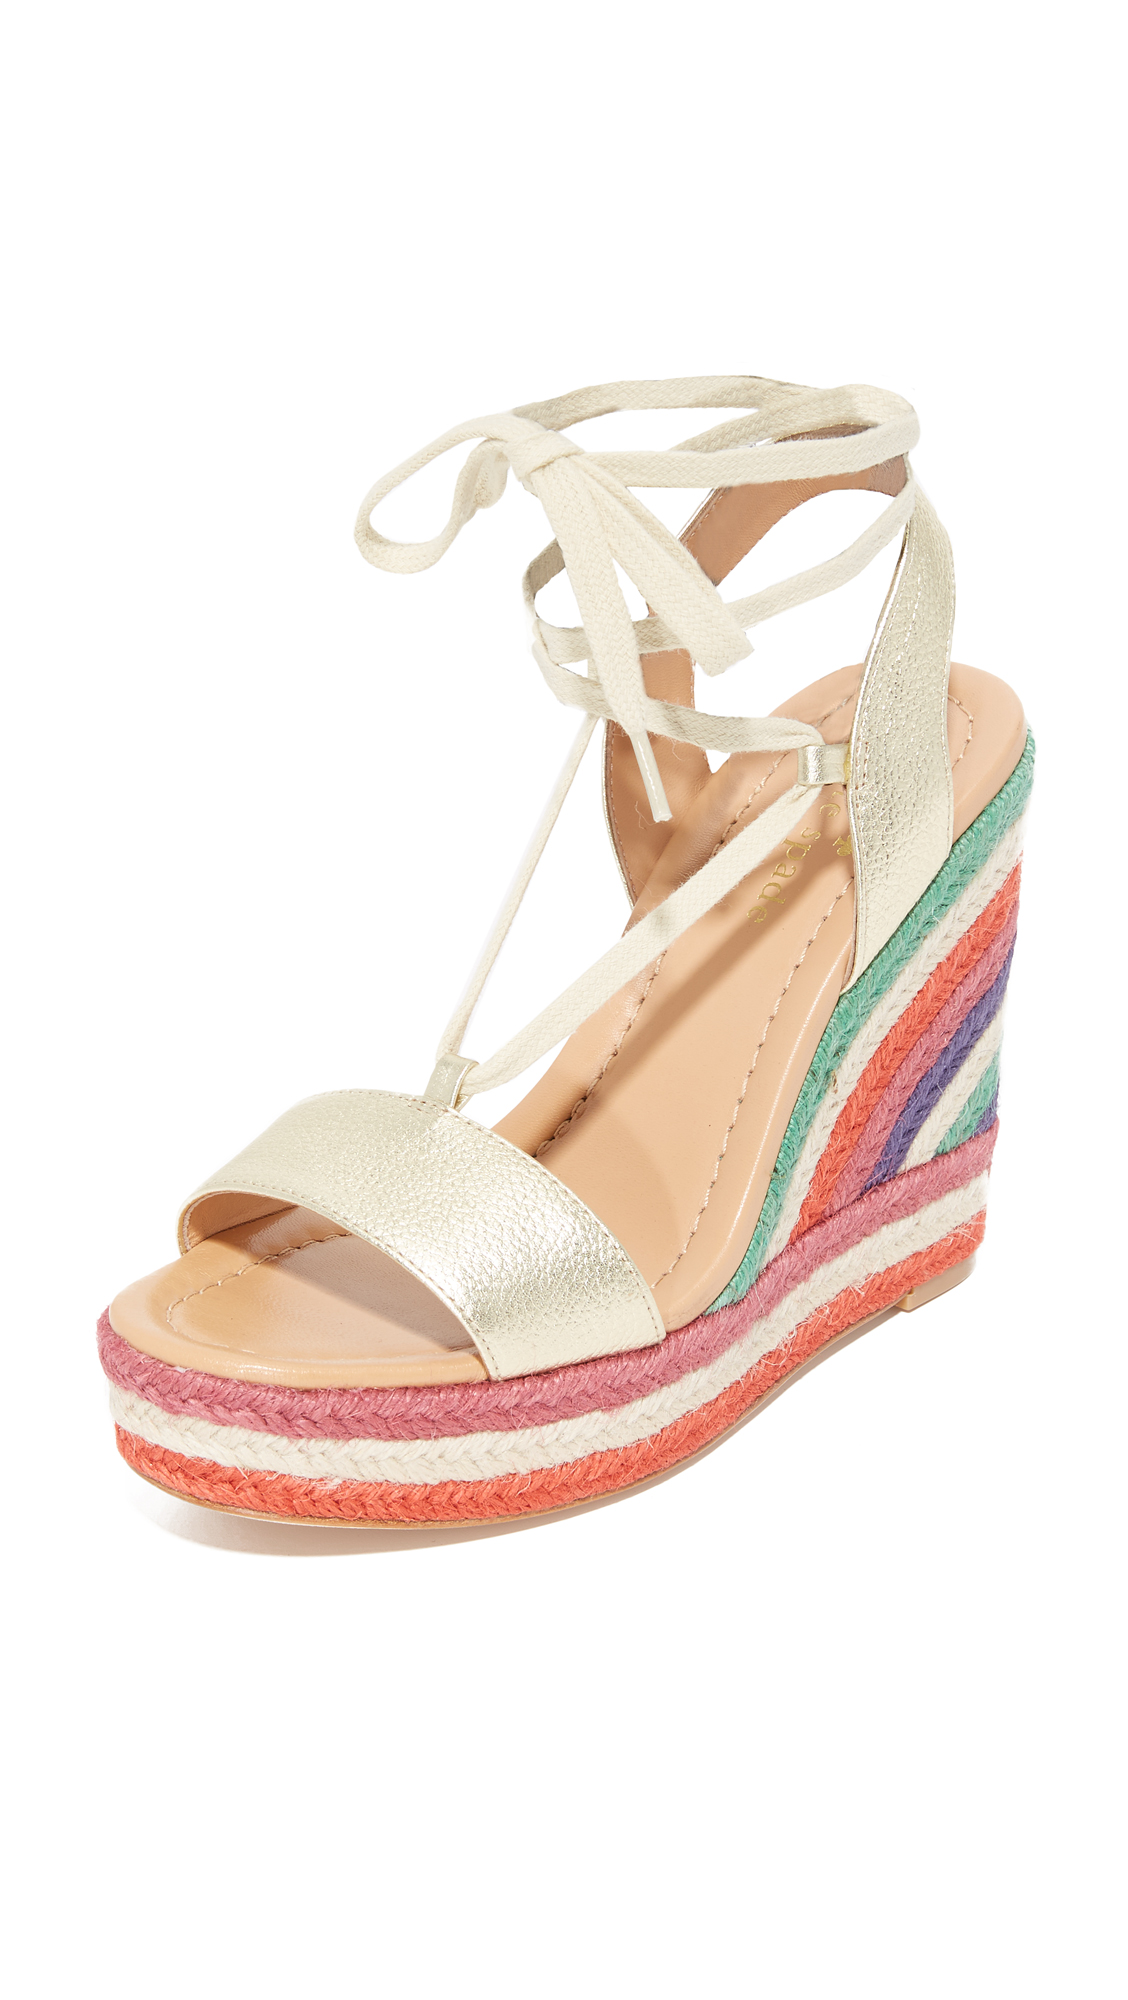 Photo of Kate Spade New York Daisy Too Wedges Gold-Multi - Kate Spade New York online